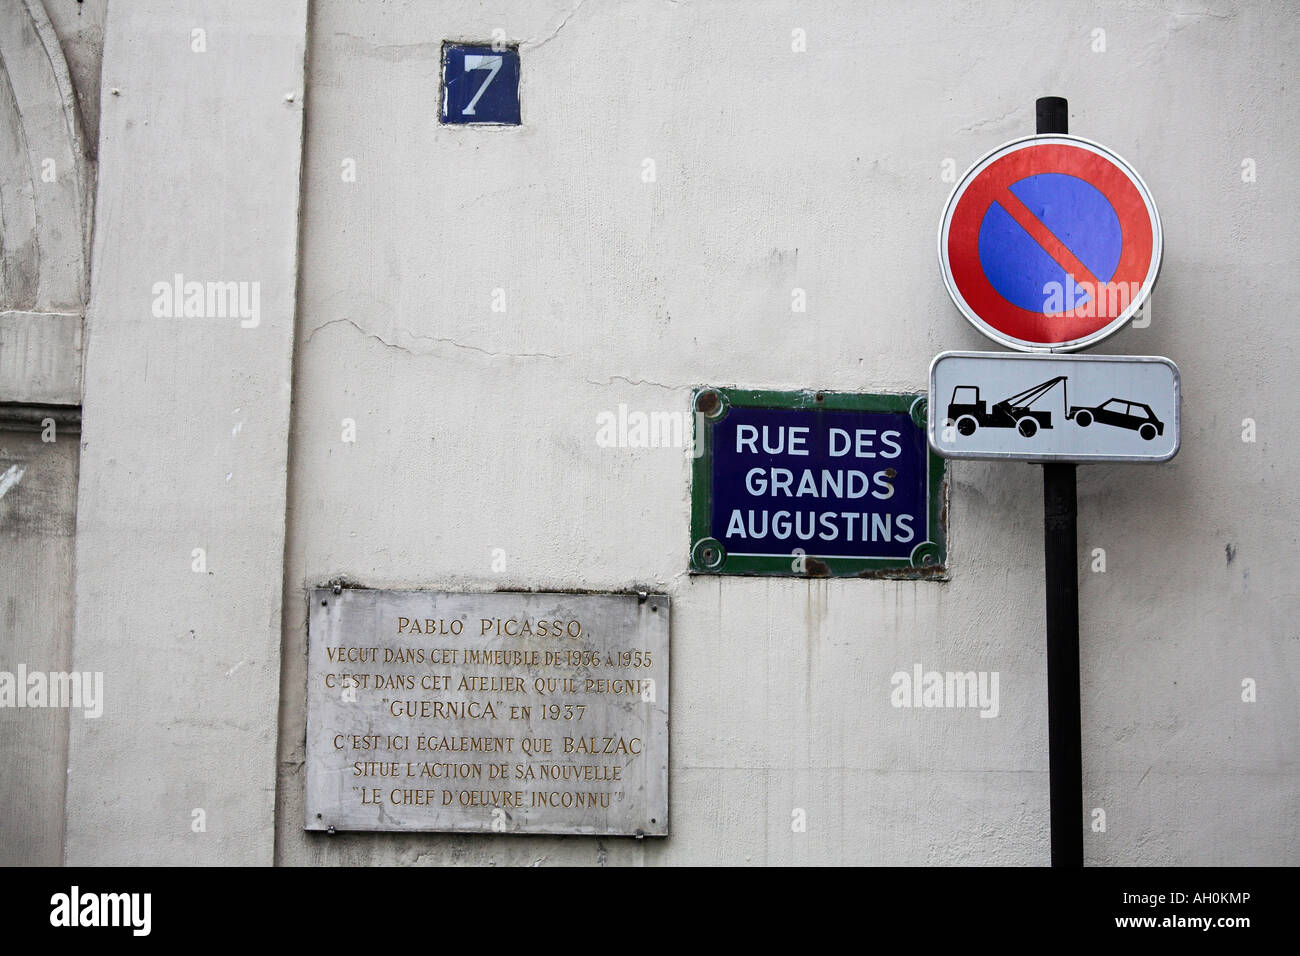 Street sign marking the place of Pablo Picasso's home and studio in Paris - Stock Image